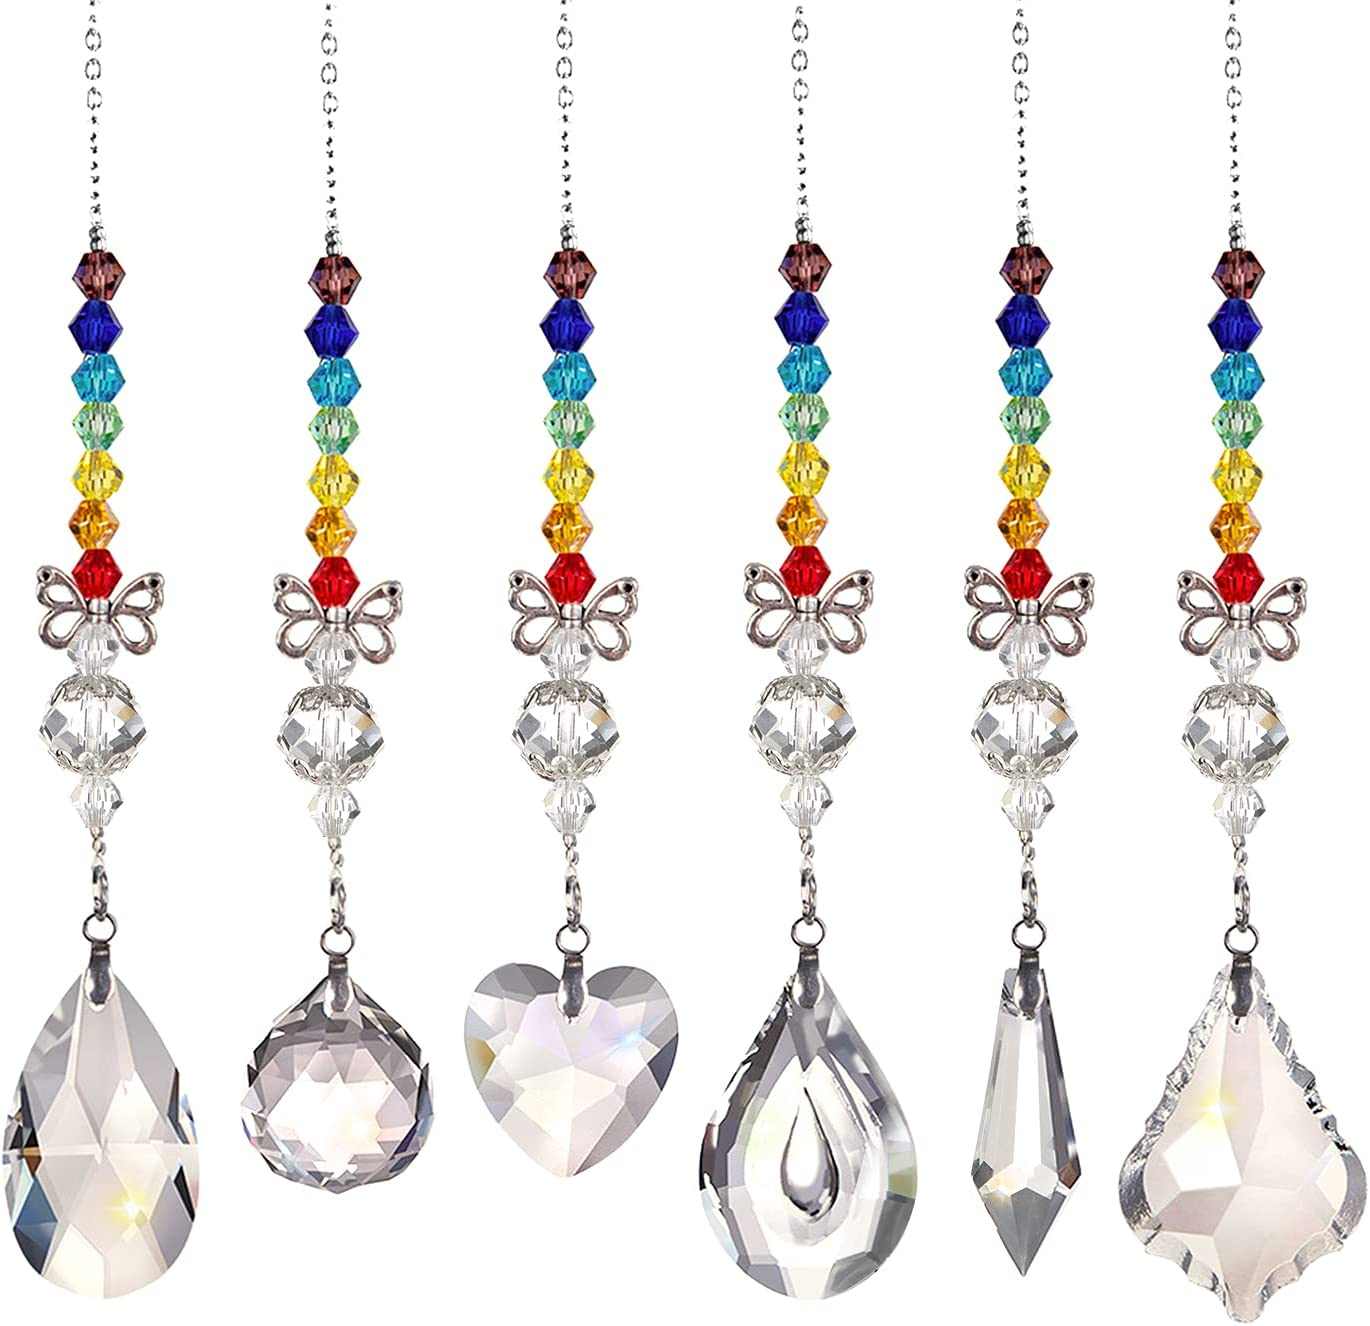 6Pcs Crystal Ball Prisms Suncatcher Window Rainbow Maker Butterfly Beads Chandelier Lamps Chain Crystals Glass Pendant Hanging Ornament for Home Office Garden Window Car Decoration